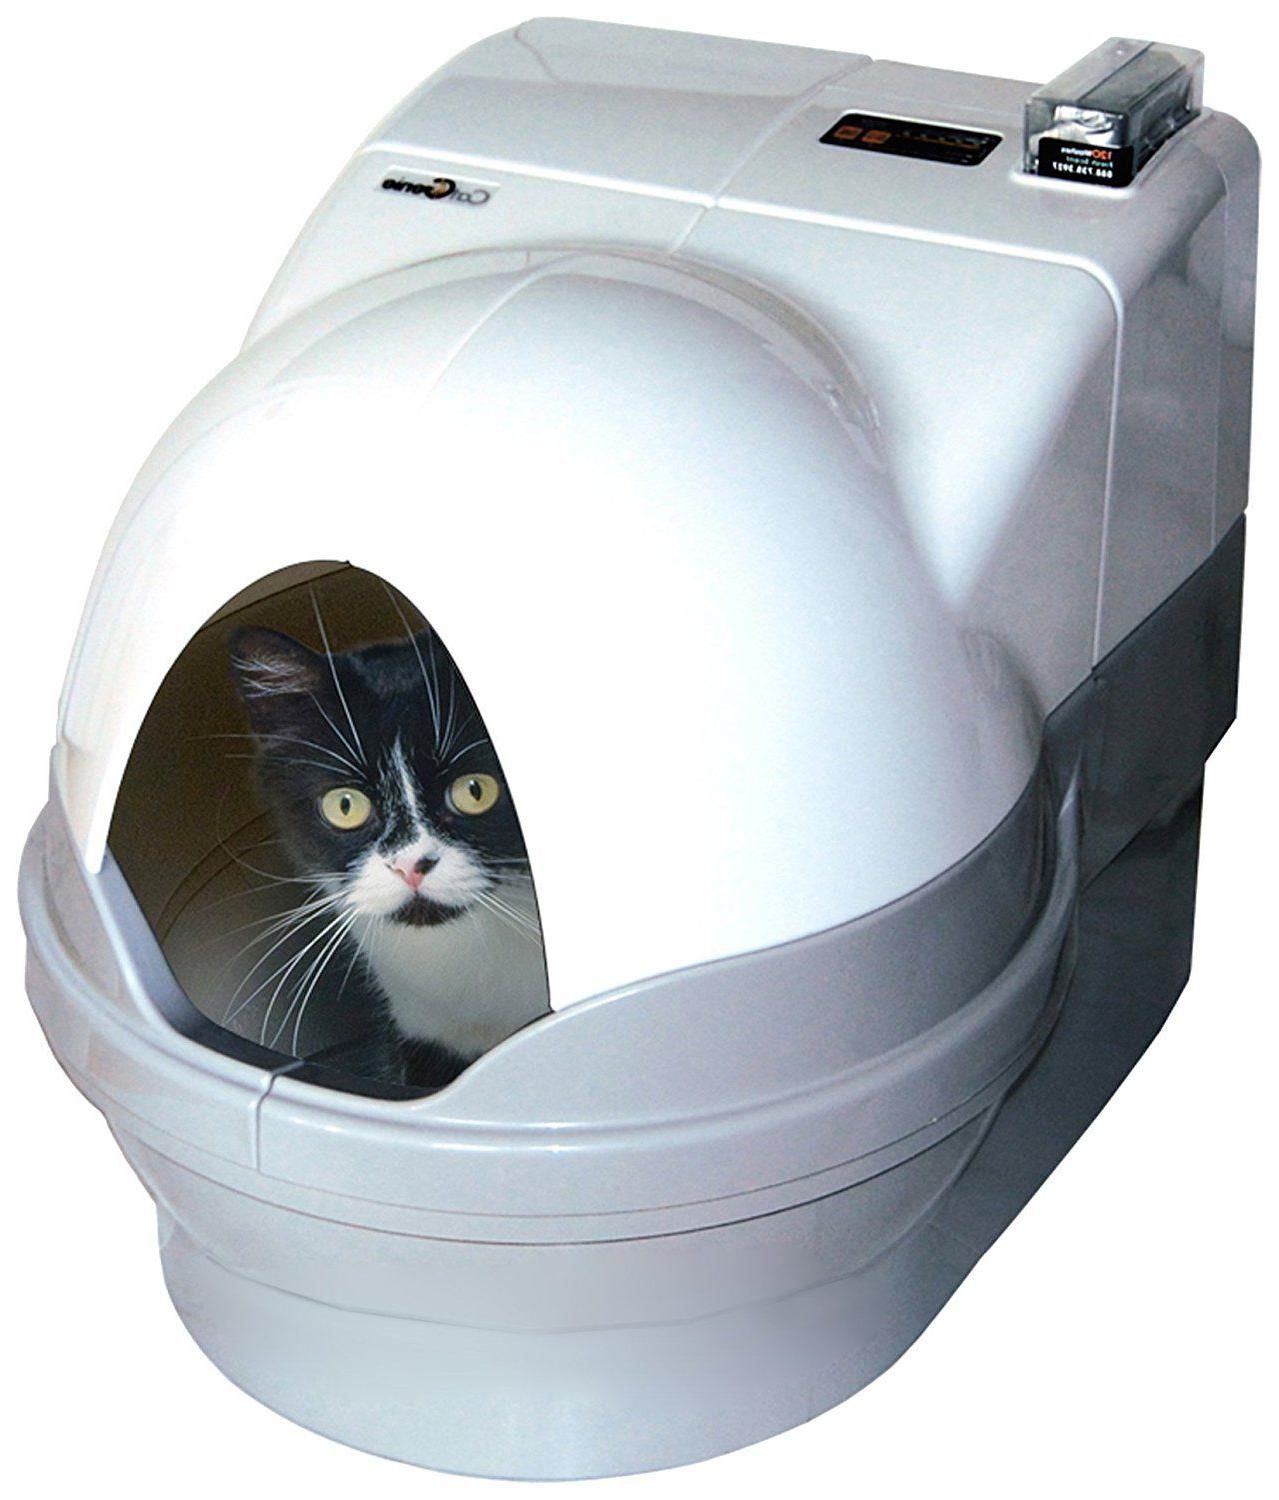 Self-Cleaning Litter and SIDEWALLS ONLY, Cat, Pets, NEW!